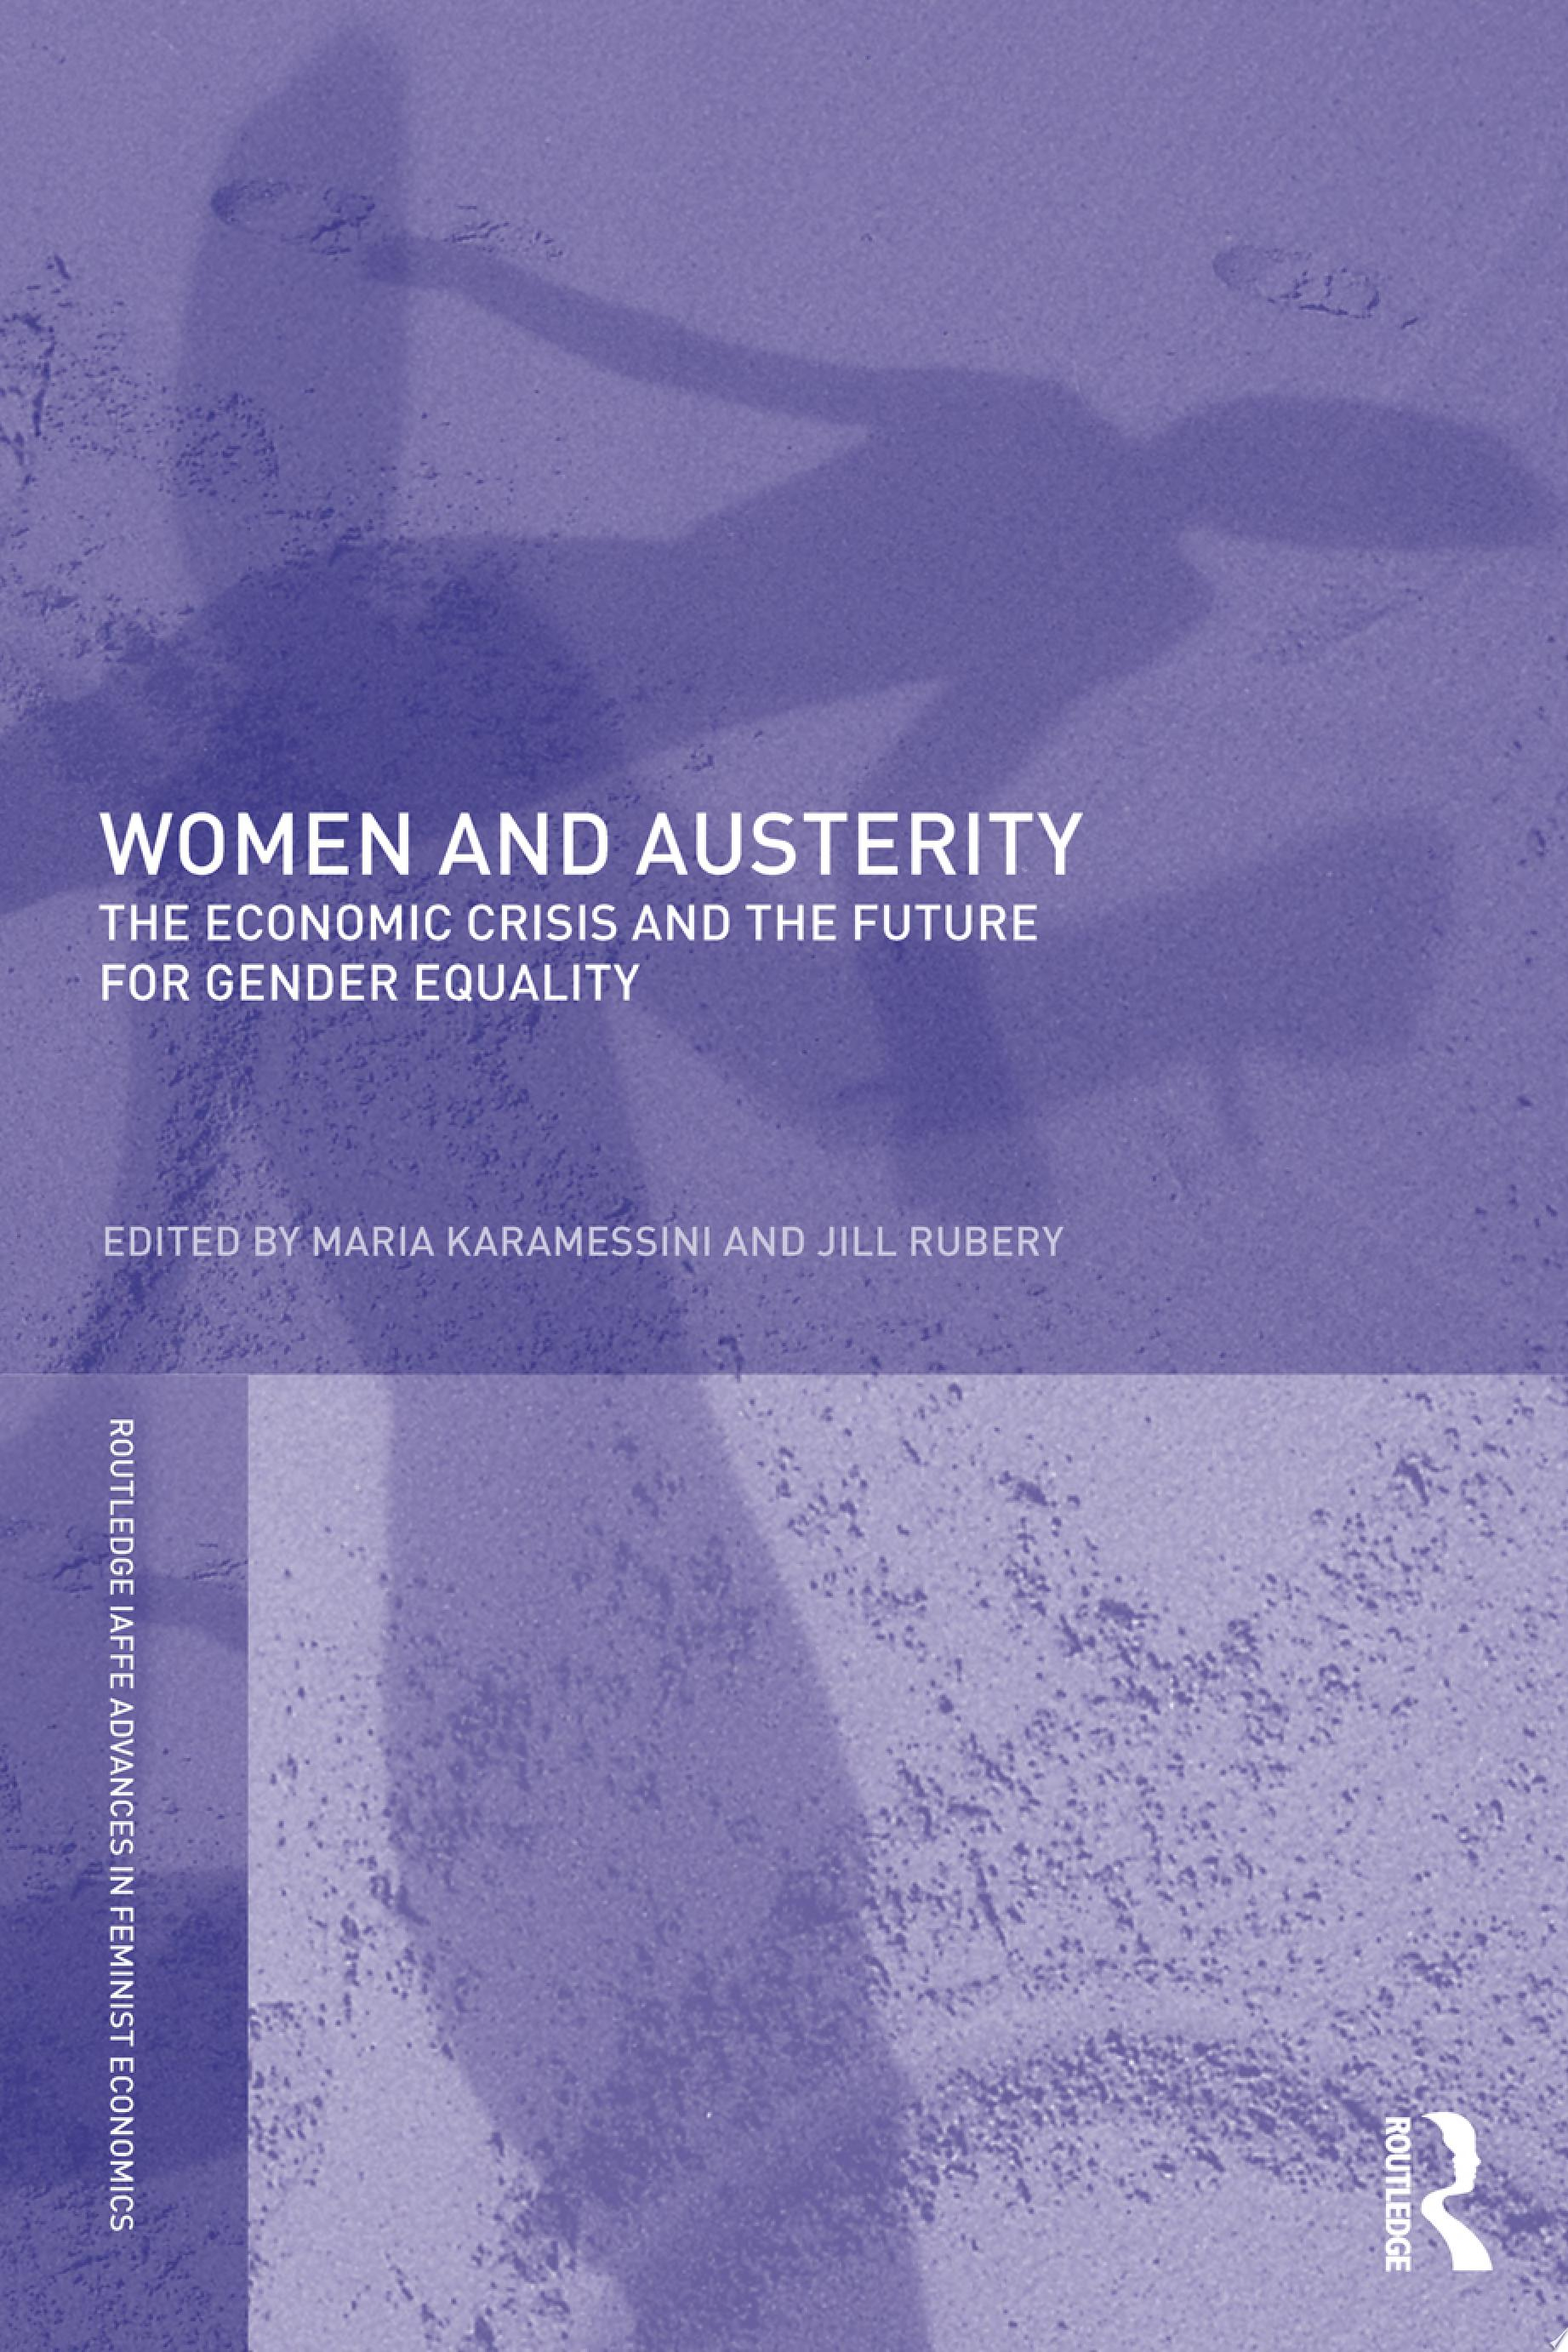 Women and Austerity